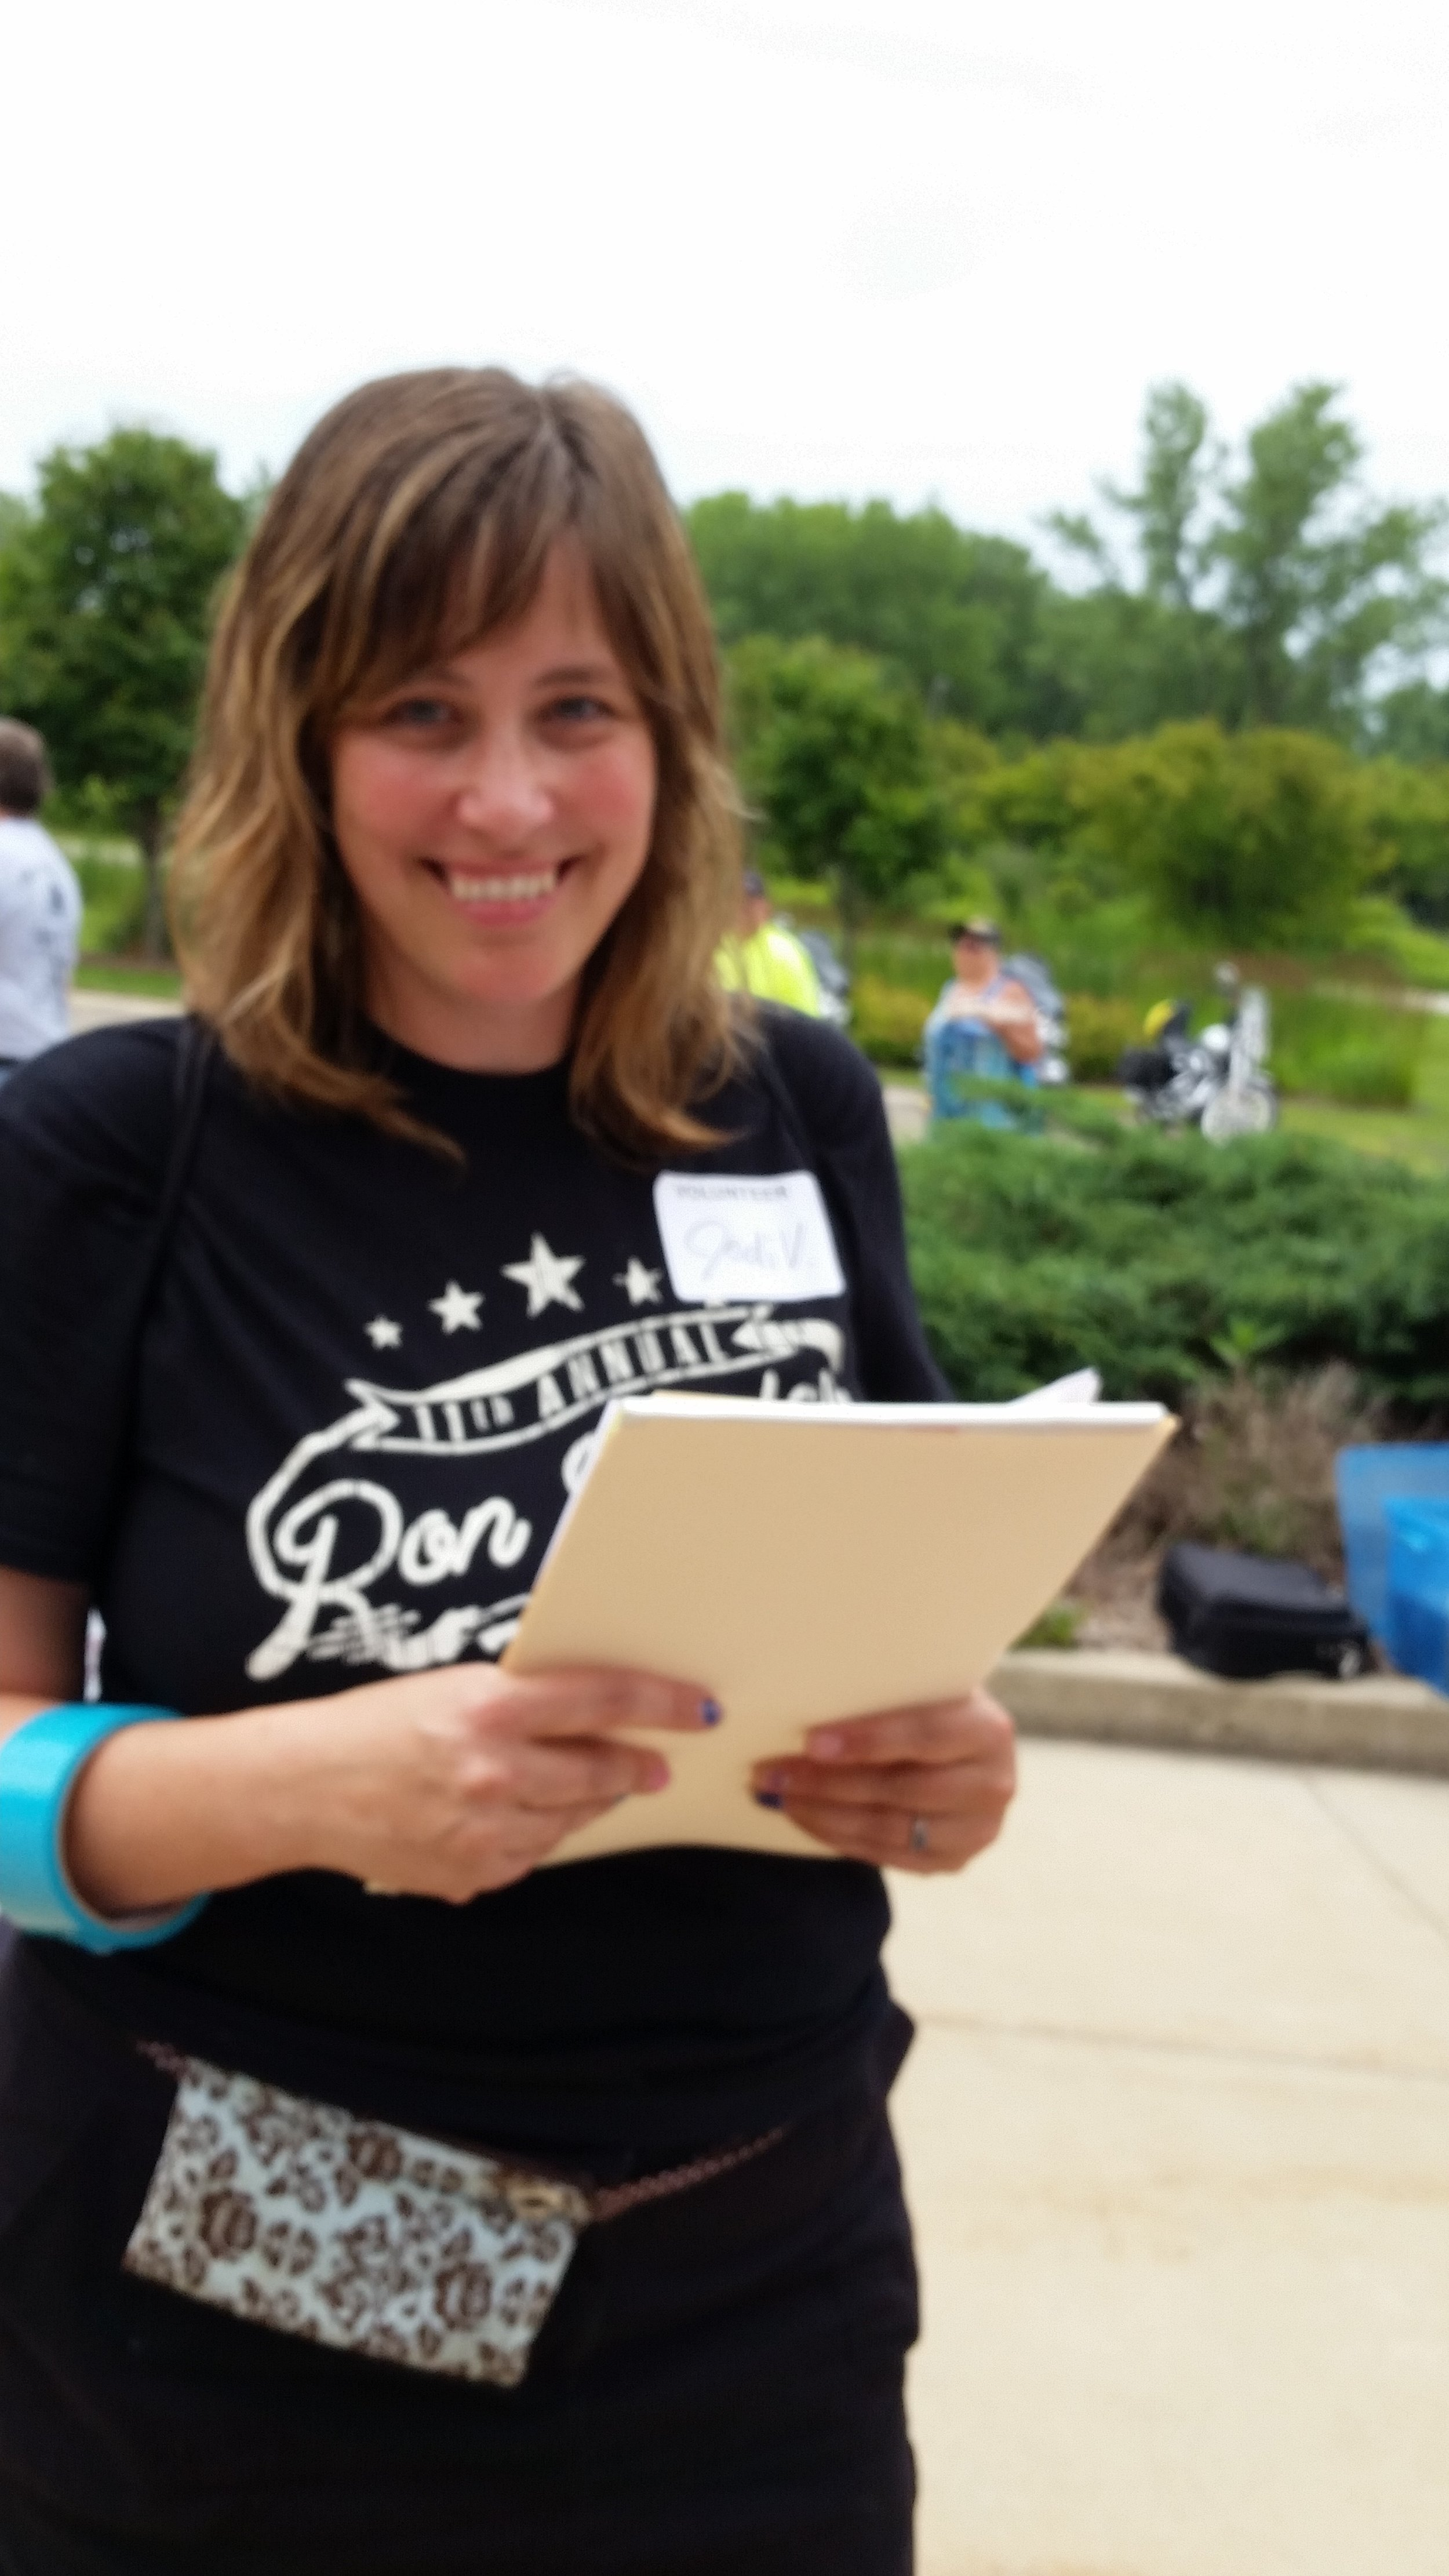 Jodi at the annual ron boylan motorcycle ride that benefits safe harbor, one of the many events she organizes.